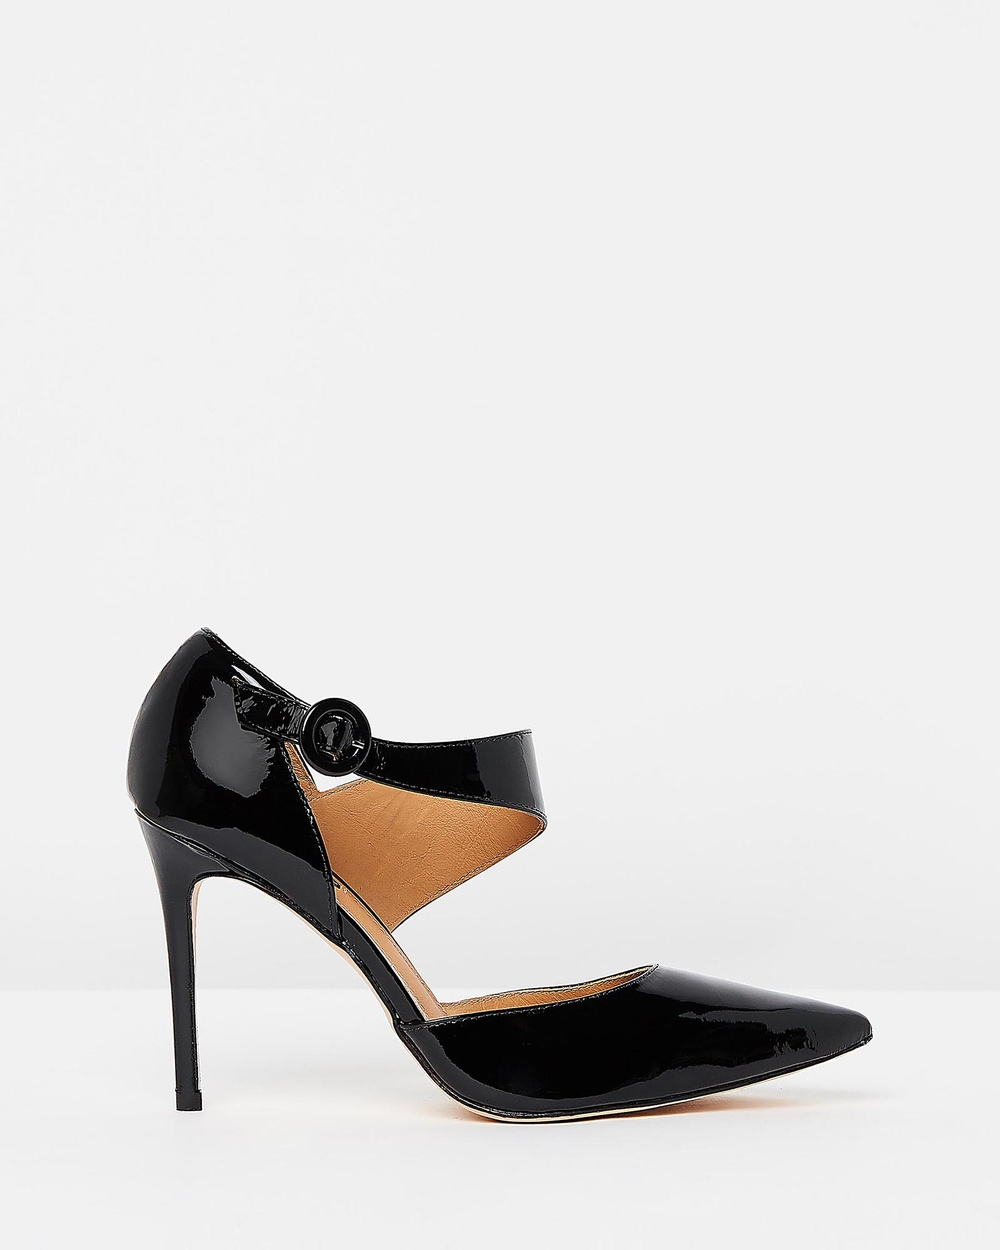 Nina Armando Kyndal All Pumps Black Patent Kyndal